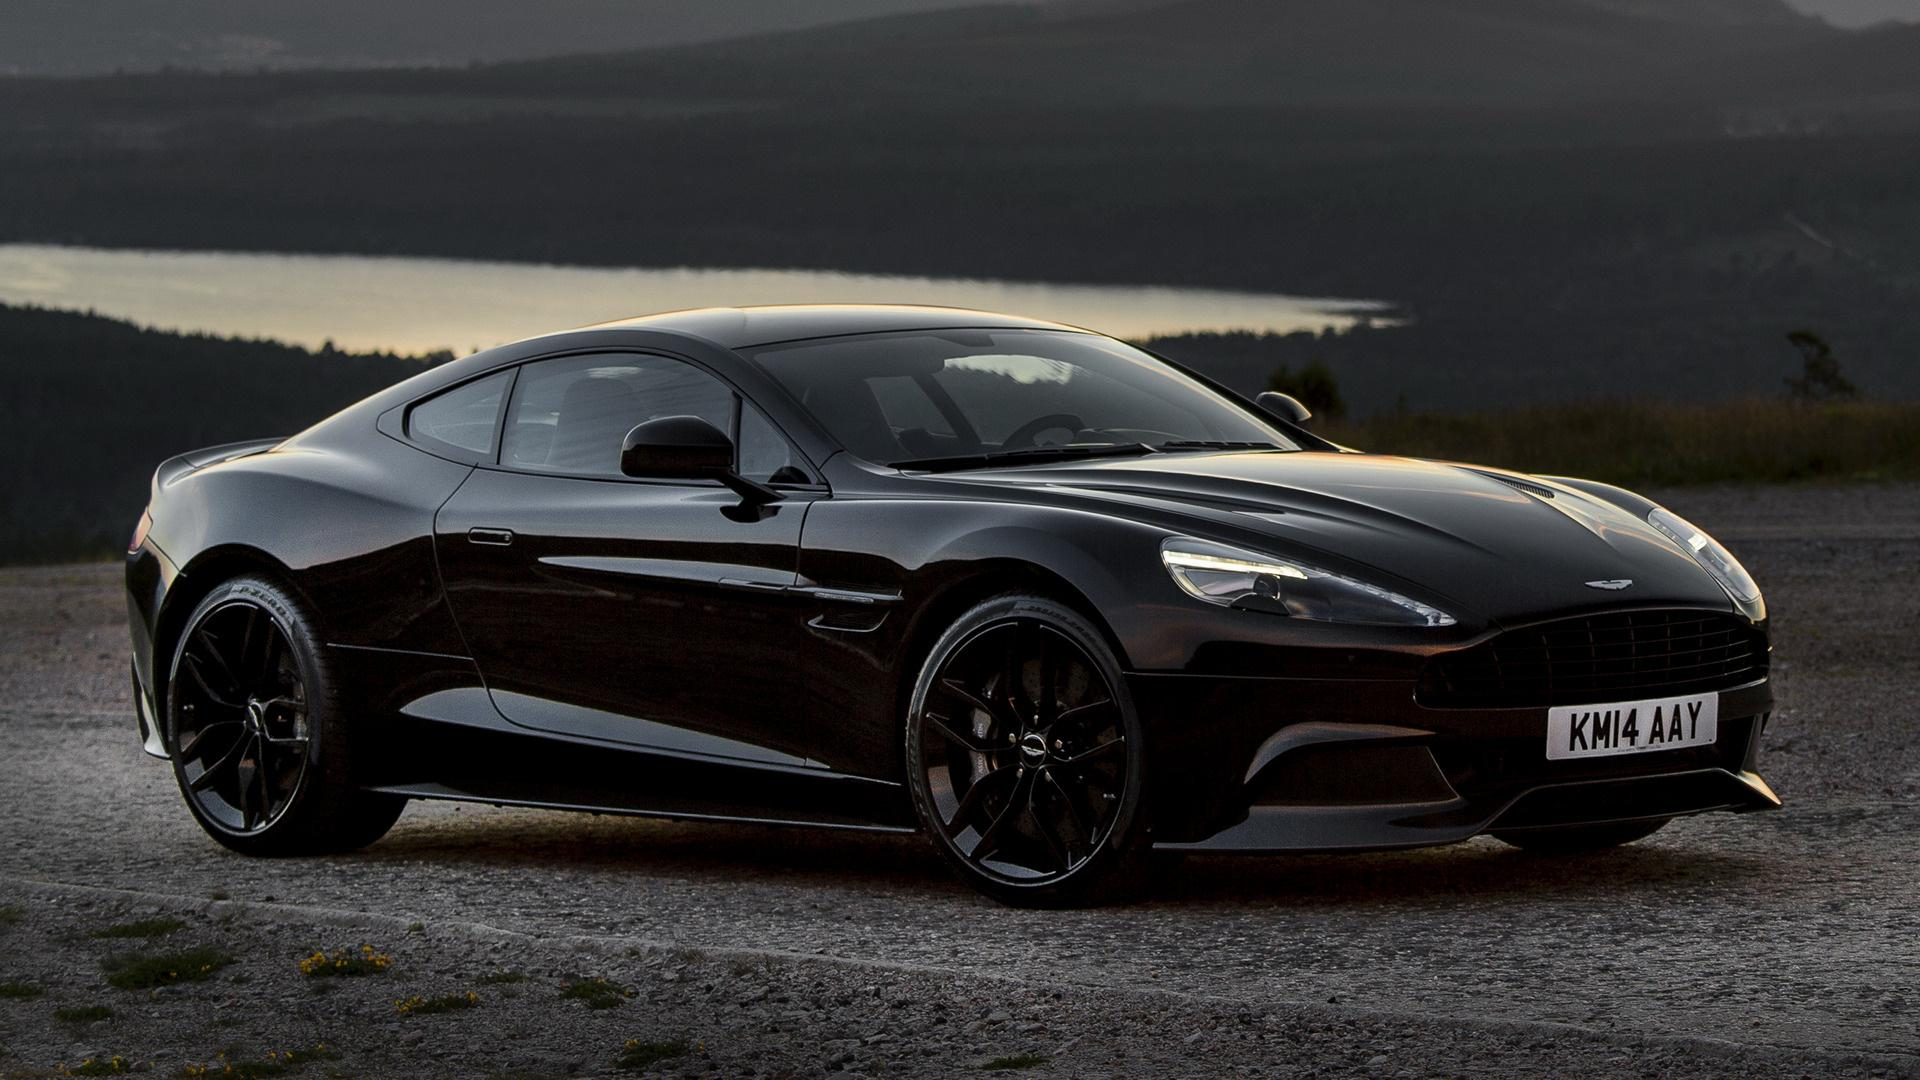 2014 Aston Martin Vanquish Carbon Black - Wallpapers and HD Images ...